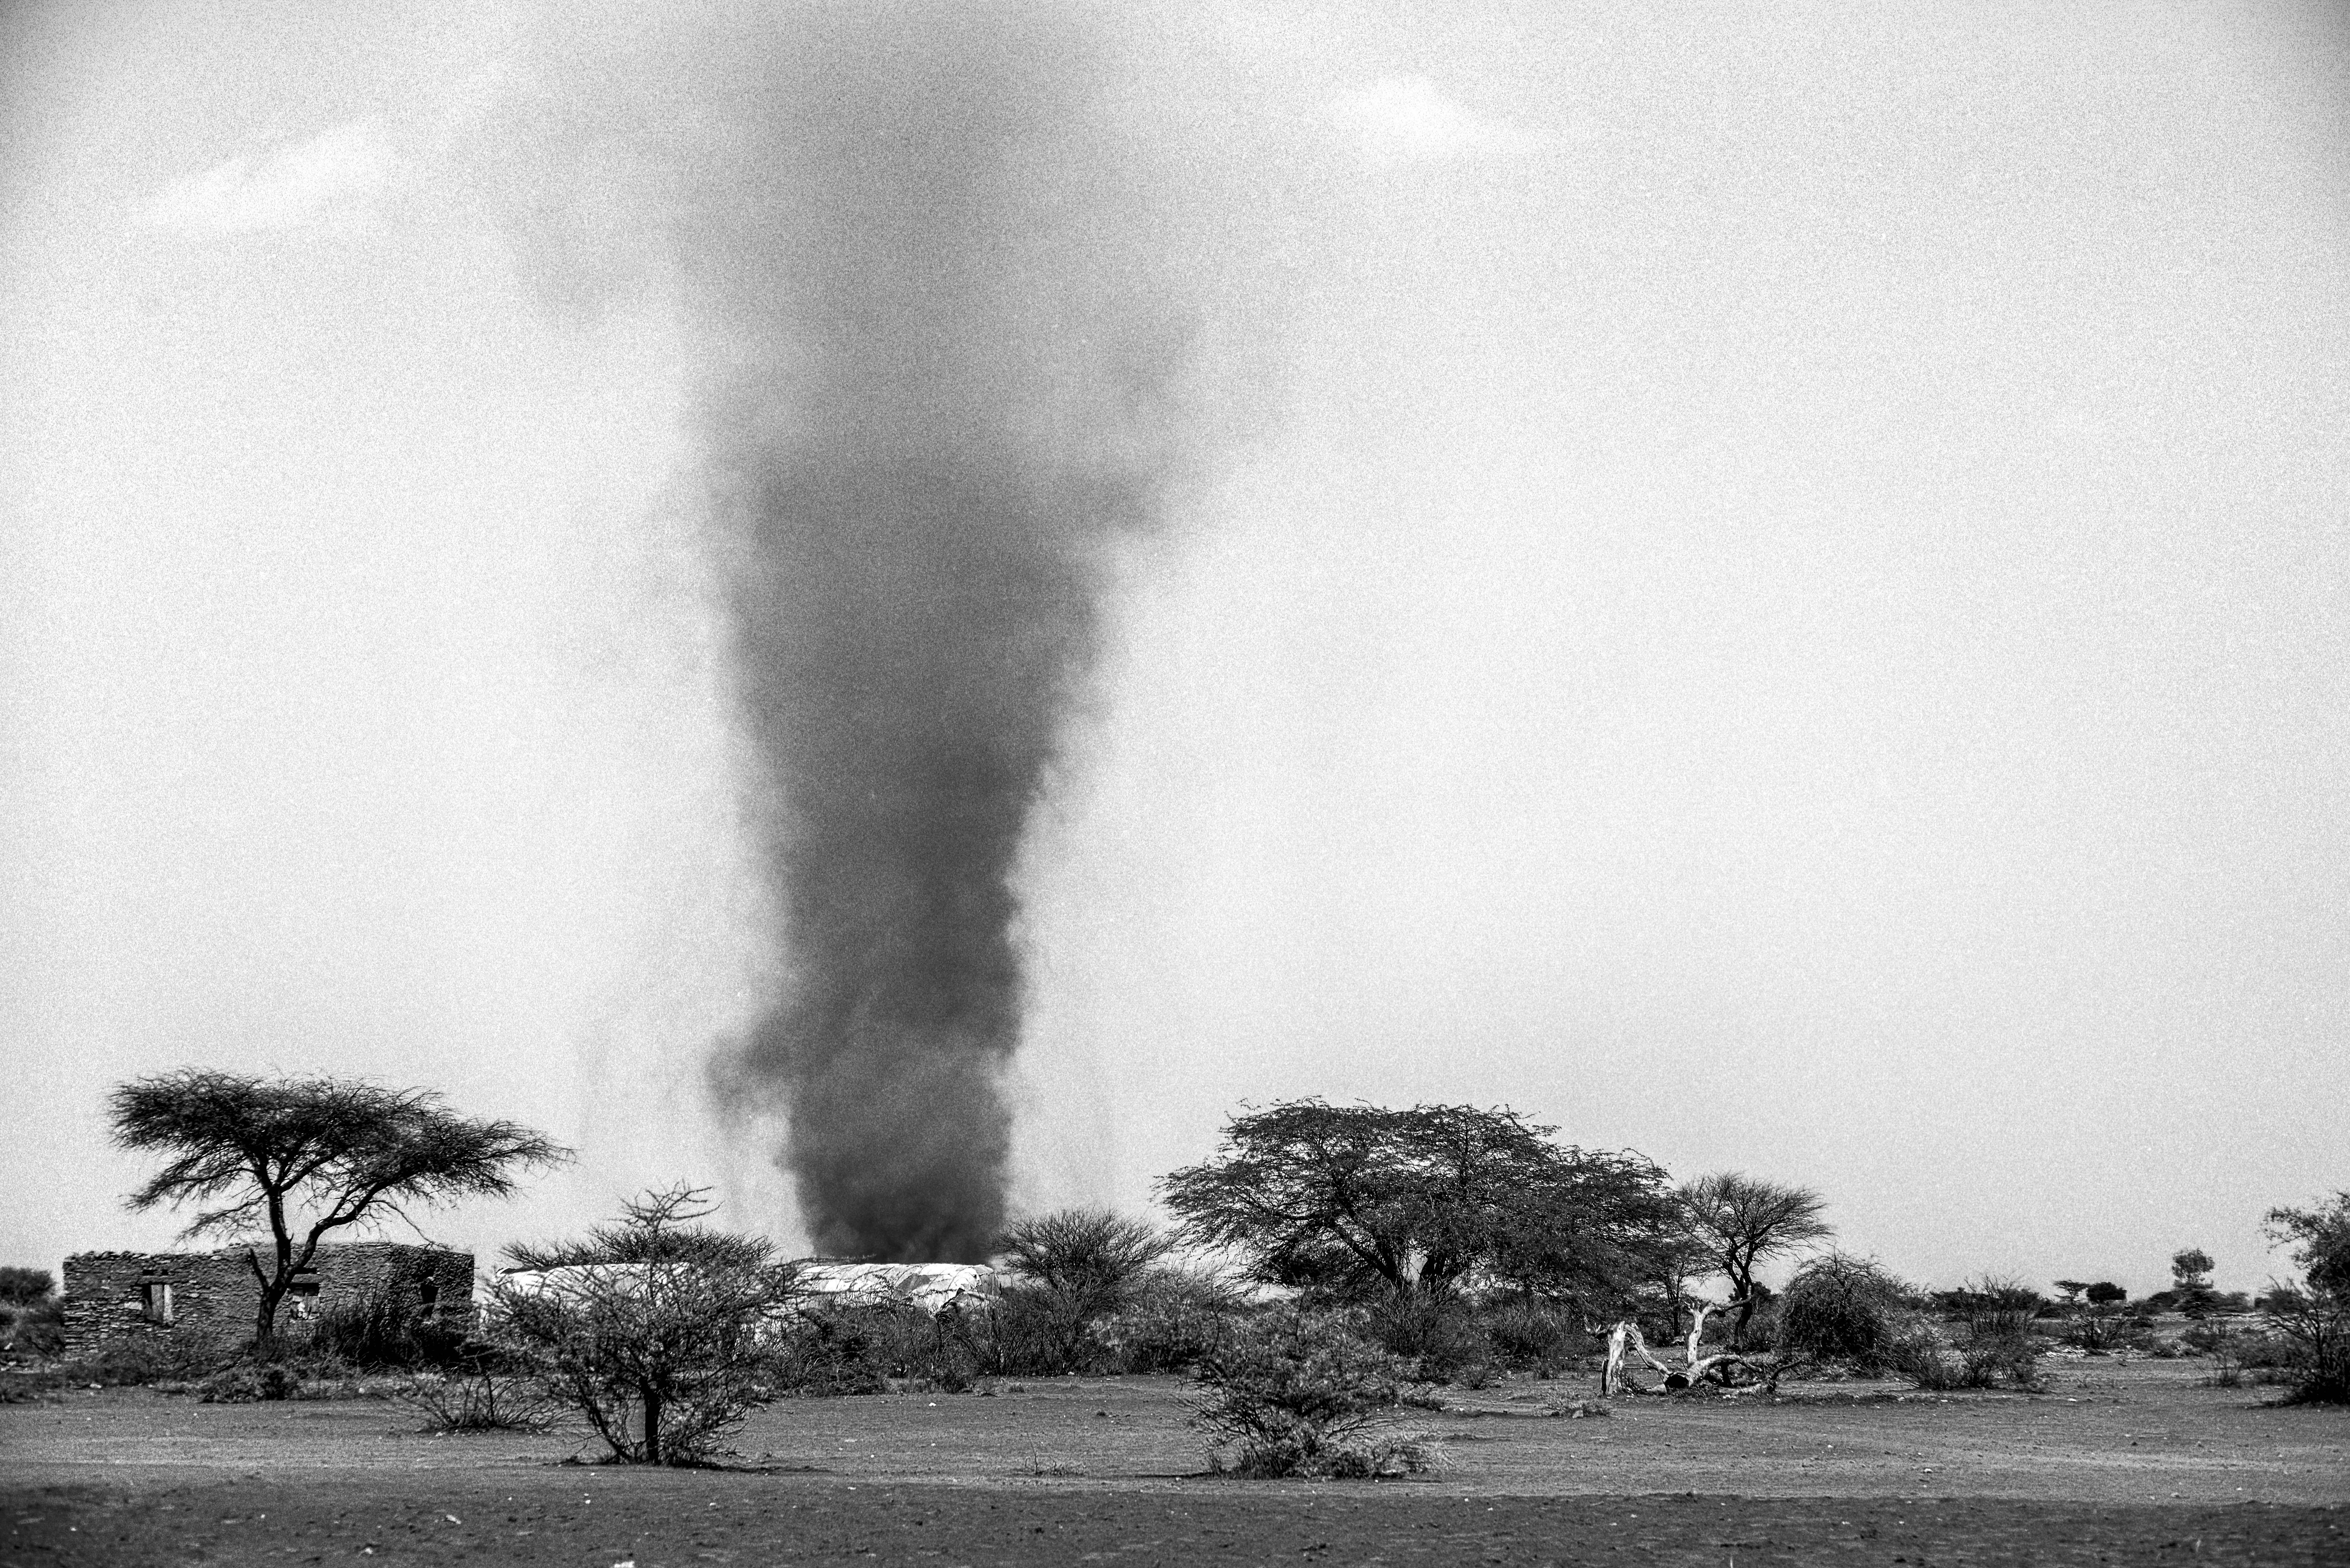 The searing heat creates a huge dust devil that cuts through a small village in the region of Somaliland in northern Somalia. Photo by Sebastian Rich for UNICEF